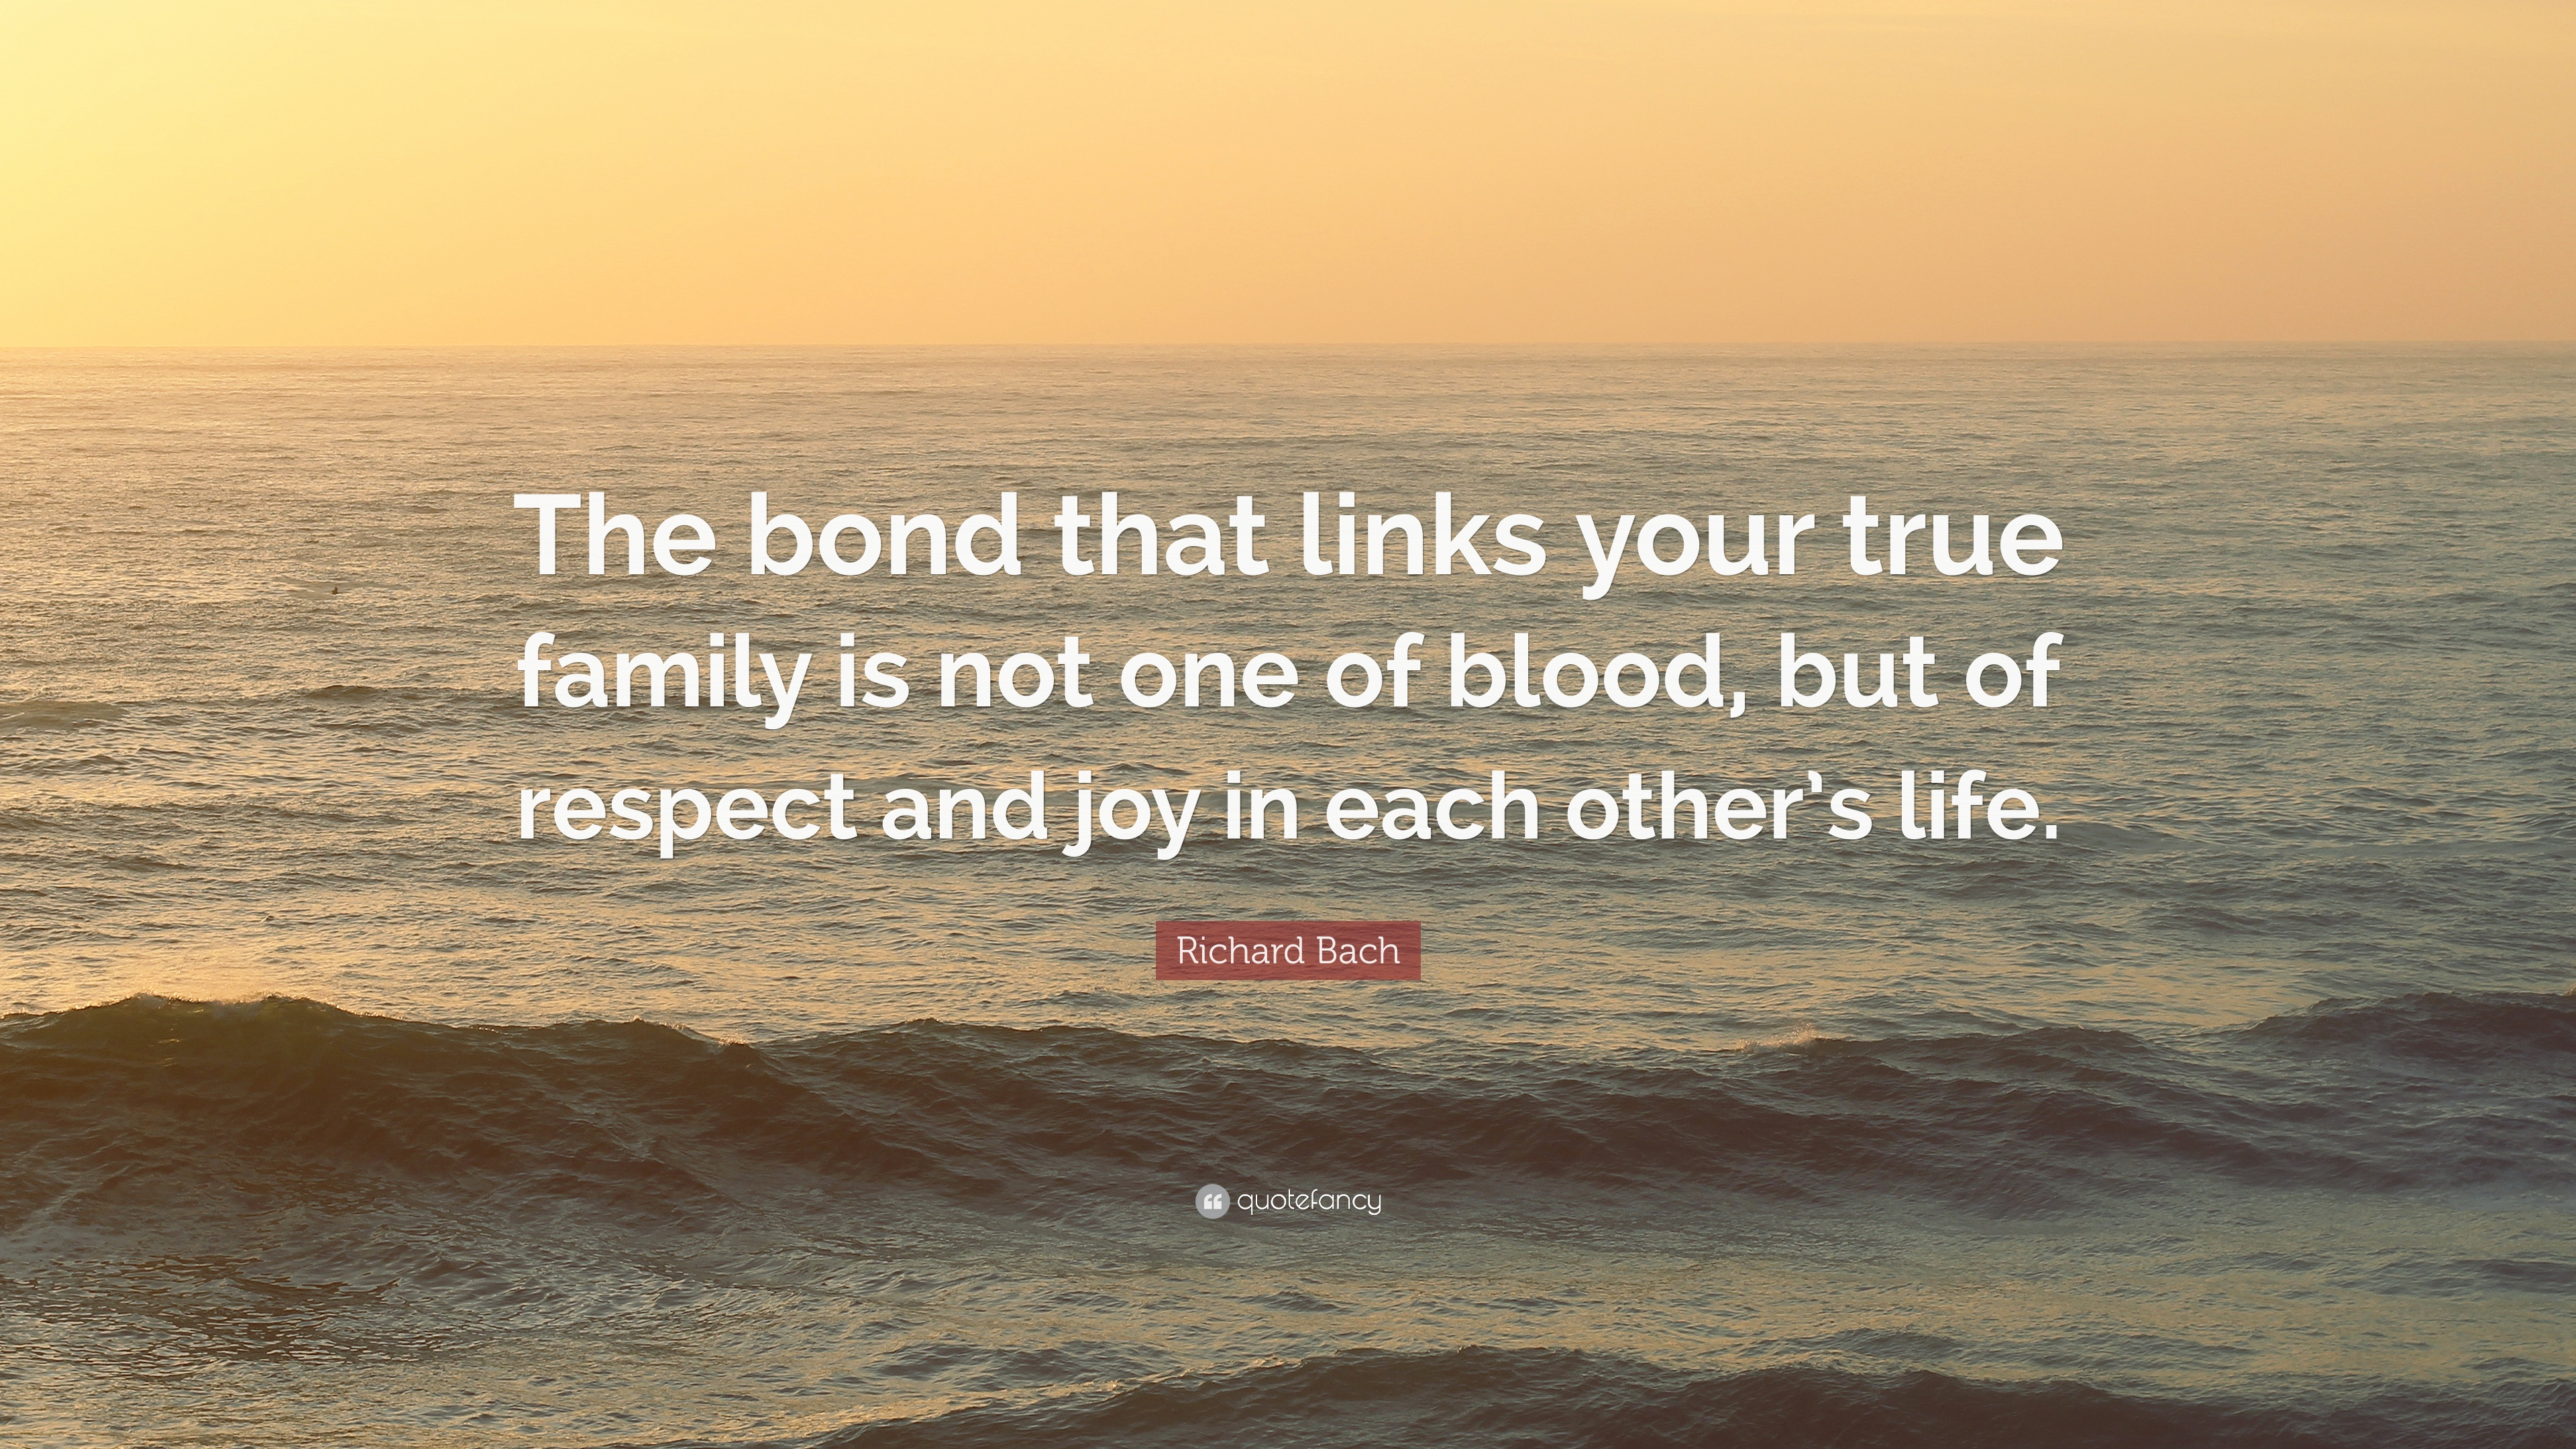 Family Quotes (40 wallpapers) - Quotefancy